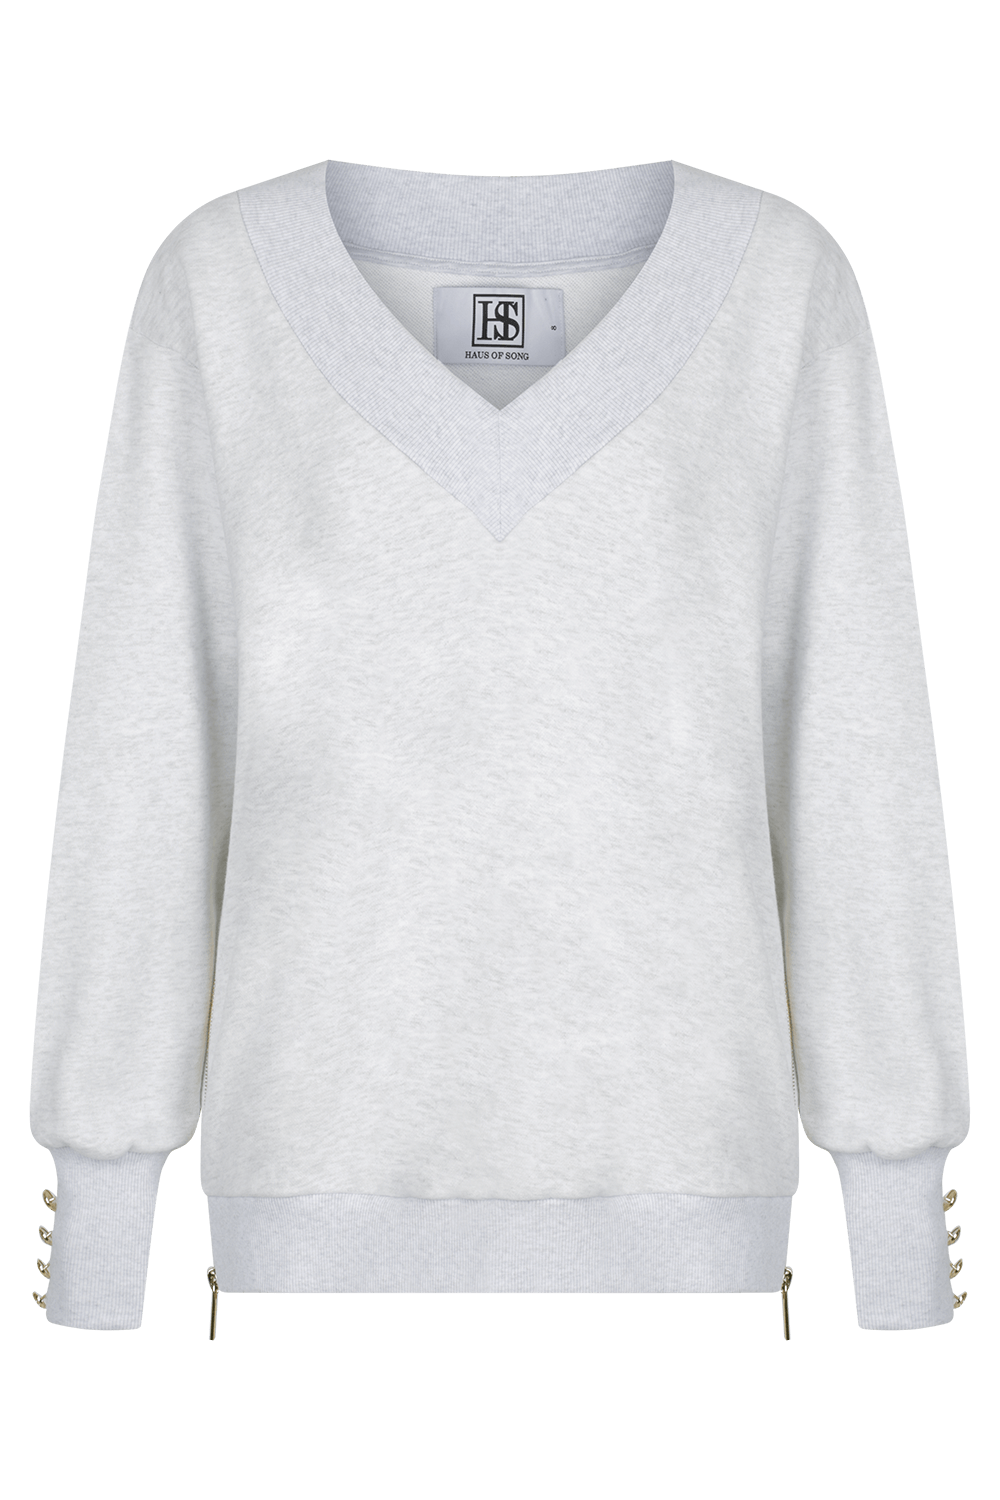 OPEN SIGHT Sweatshirt - GRY/GLD | HAUS OF SONG